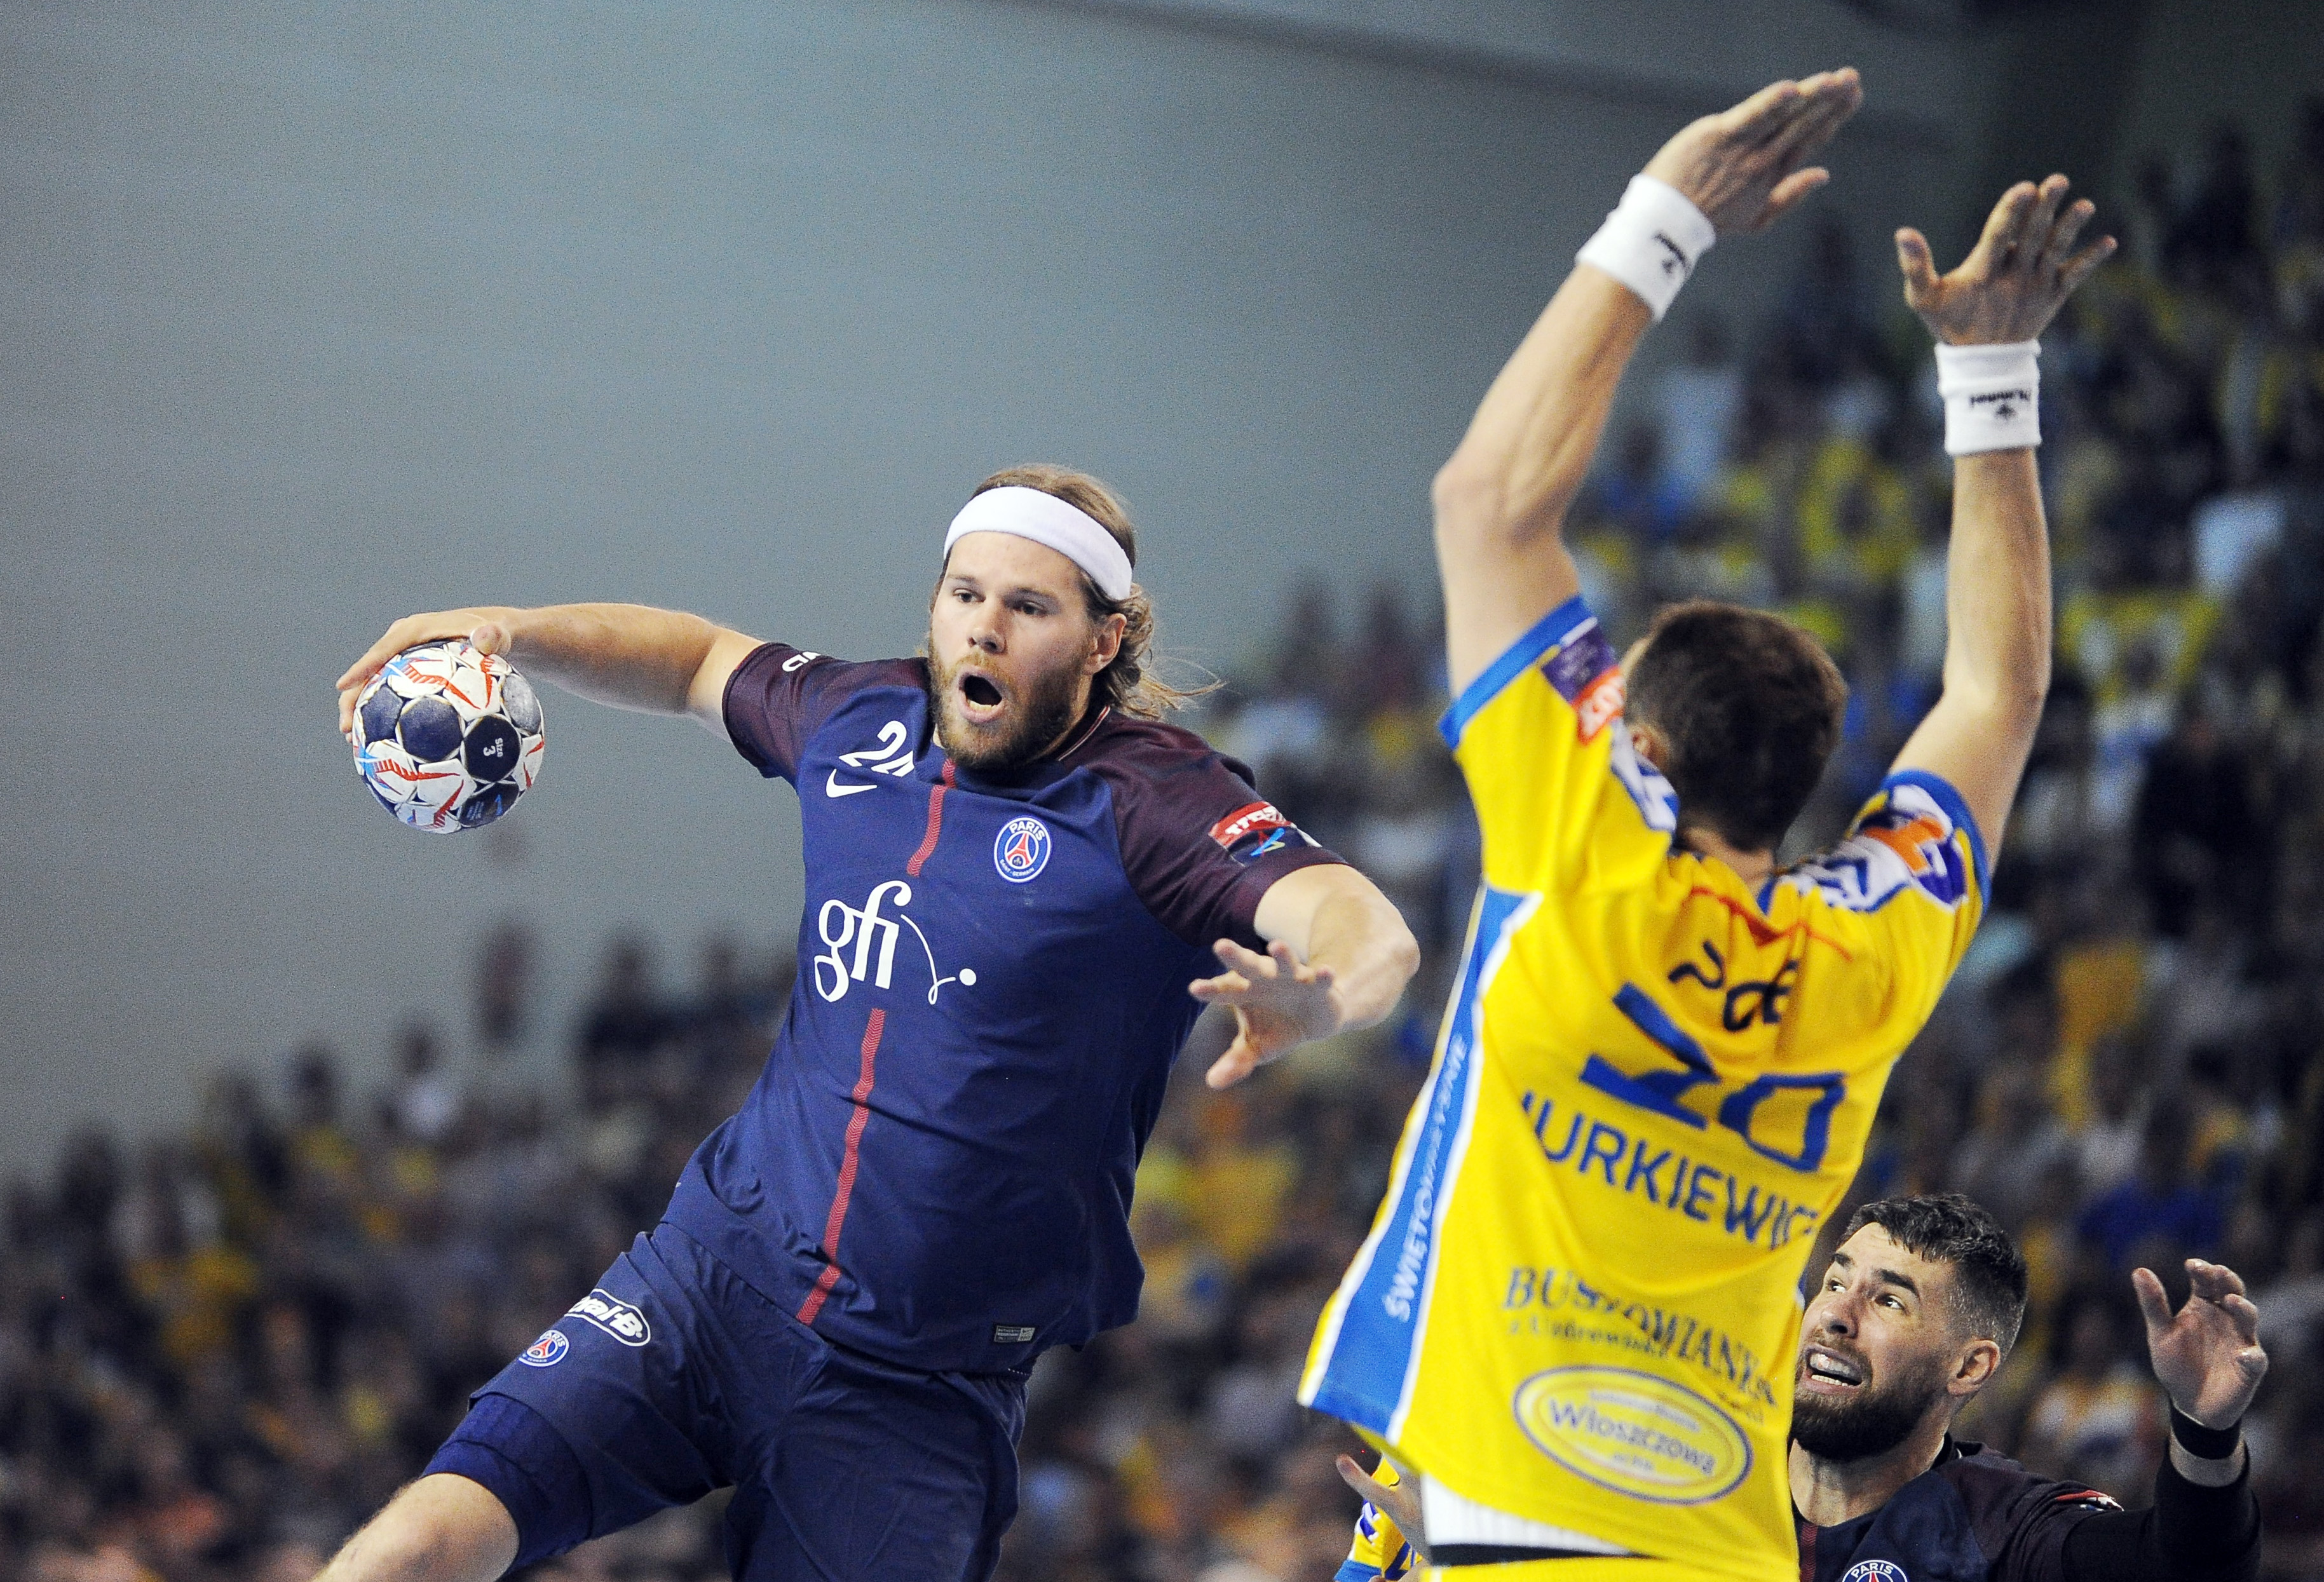 PGE VIVE Kielce - Paris-Saint-Germain Handball